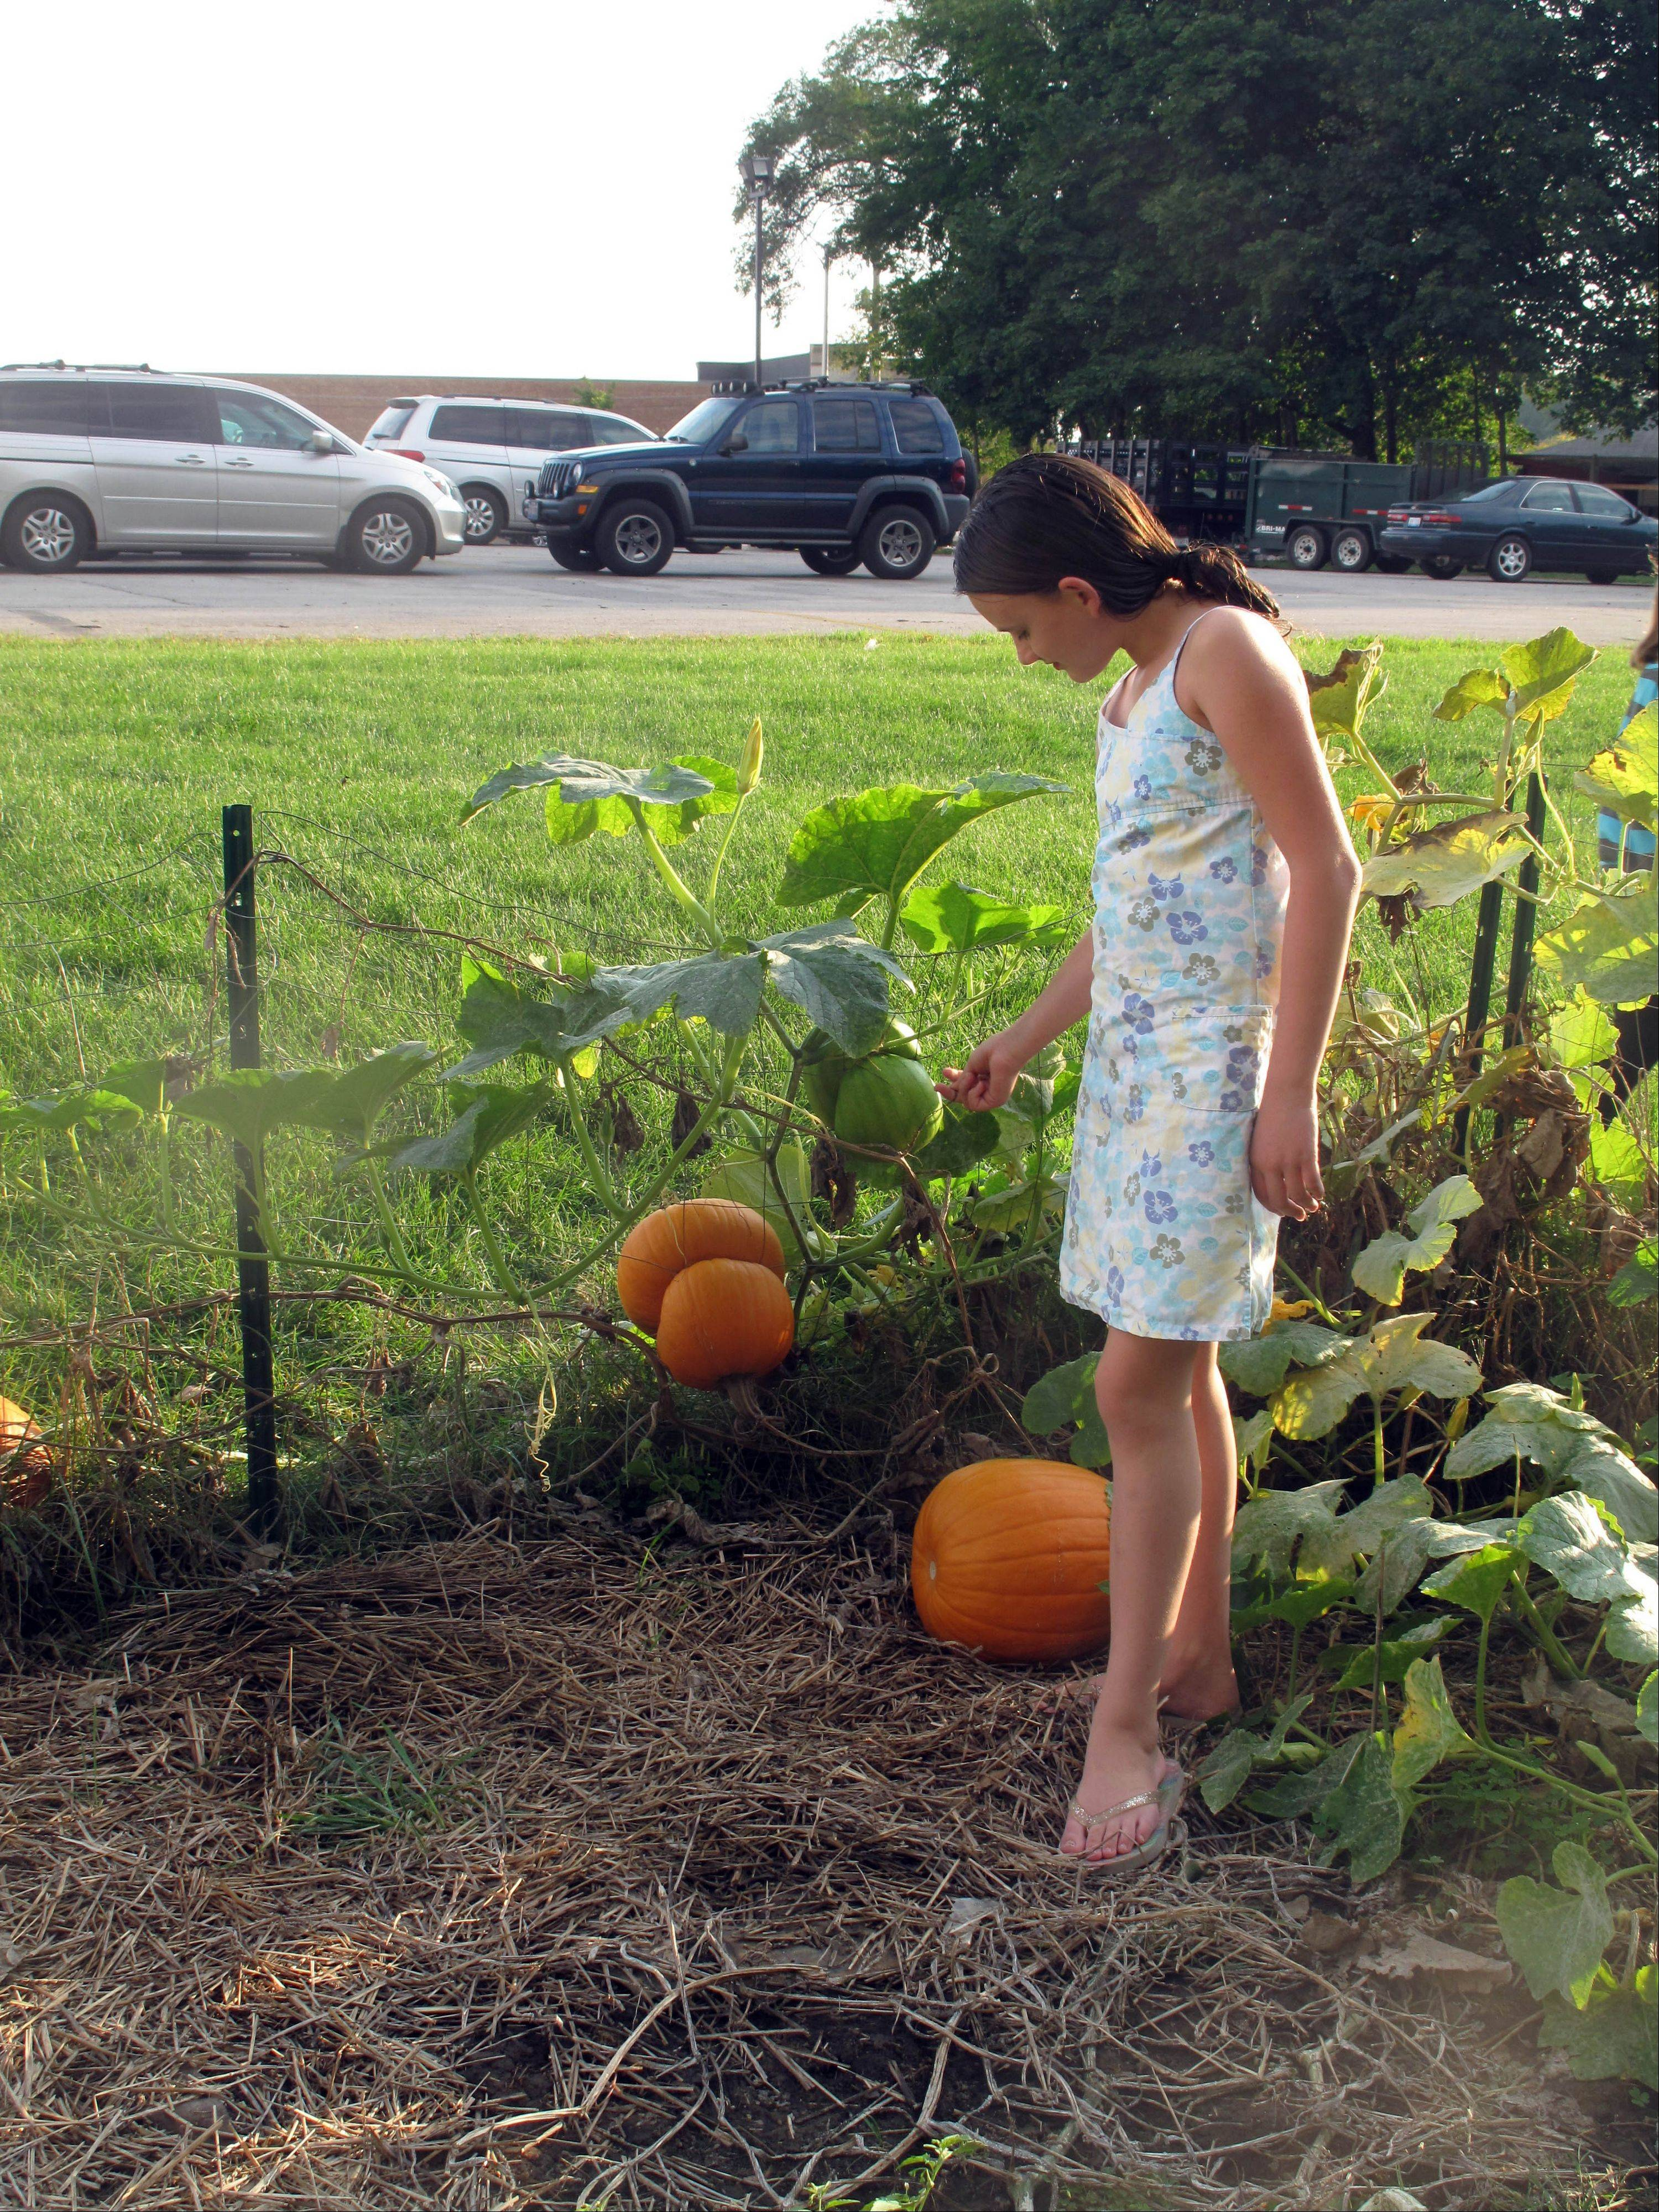 Anna Arriola, a fifth-grader at Beebe Elementary School in Naperville, points out a pumpkin growing around a fence Thursday during a harvest day celebration at the school's new garden.